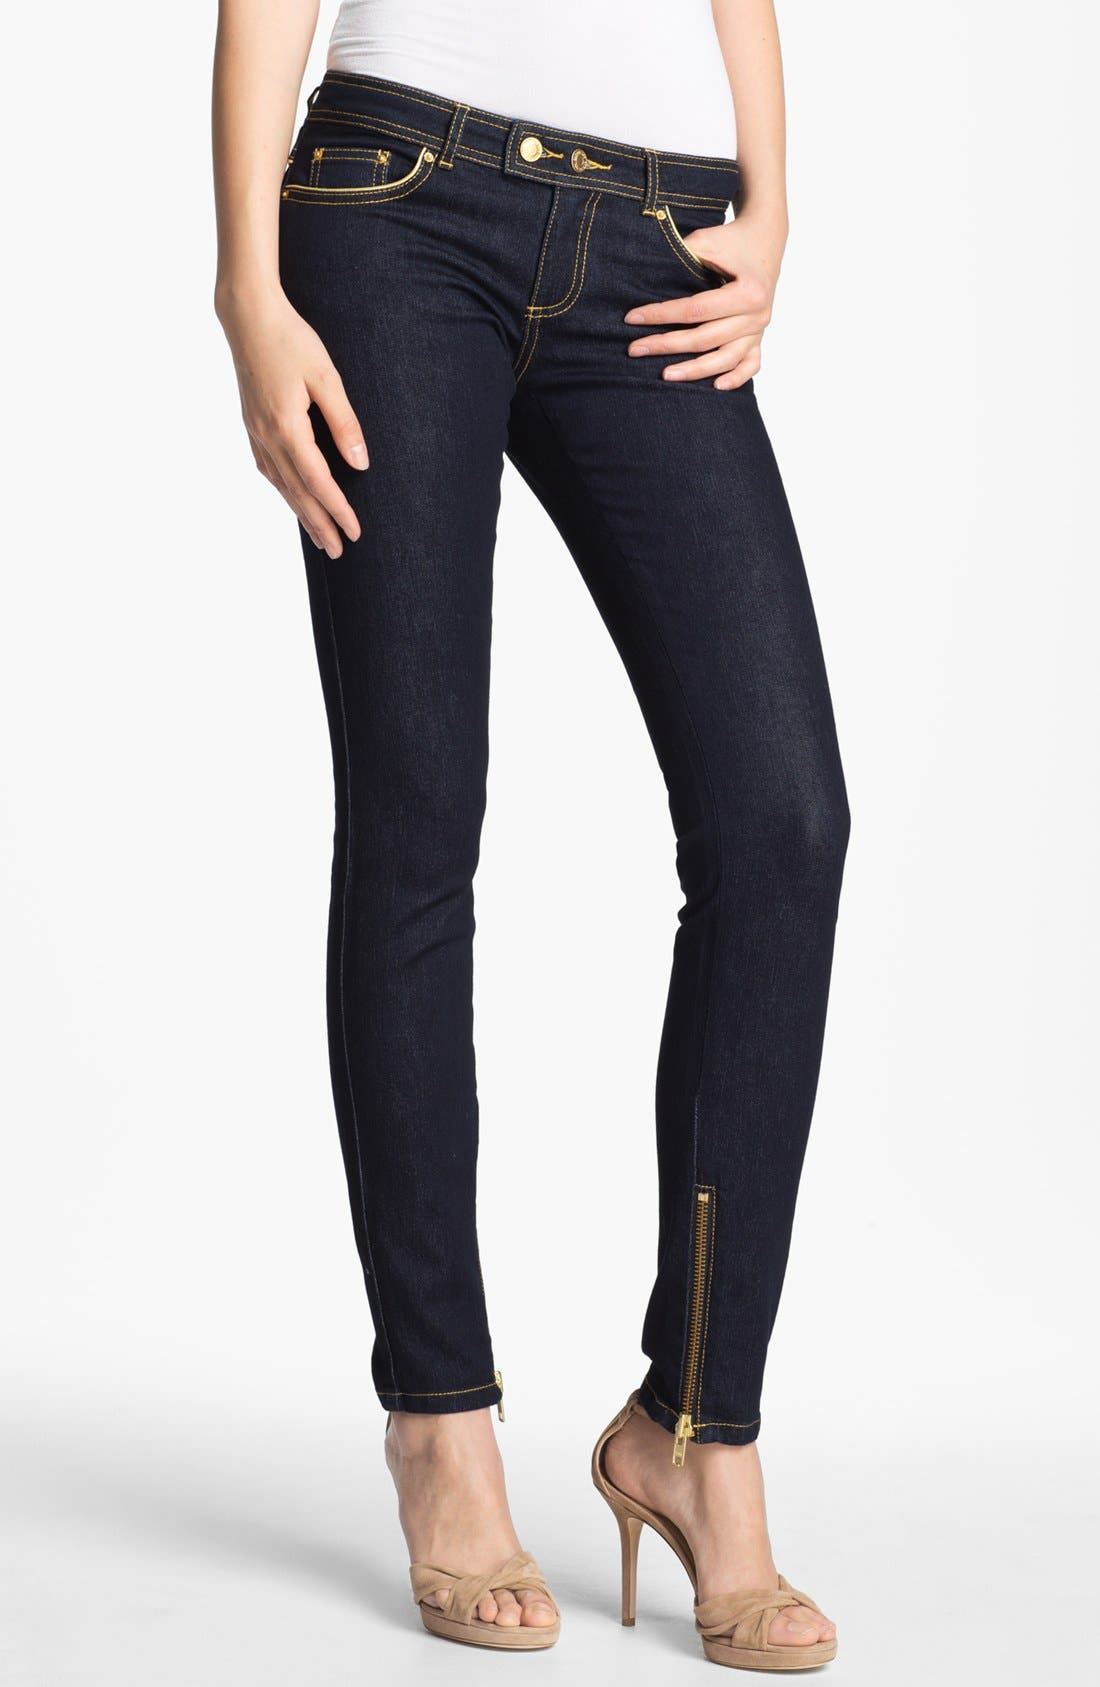 Main Image - Rachel Zoe Leather Piped Skinny Stretch Jeans